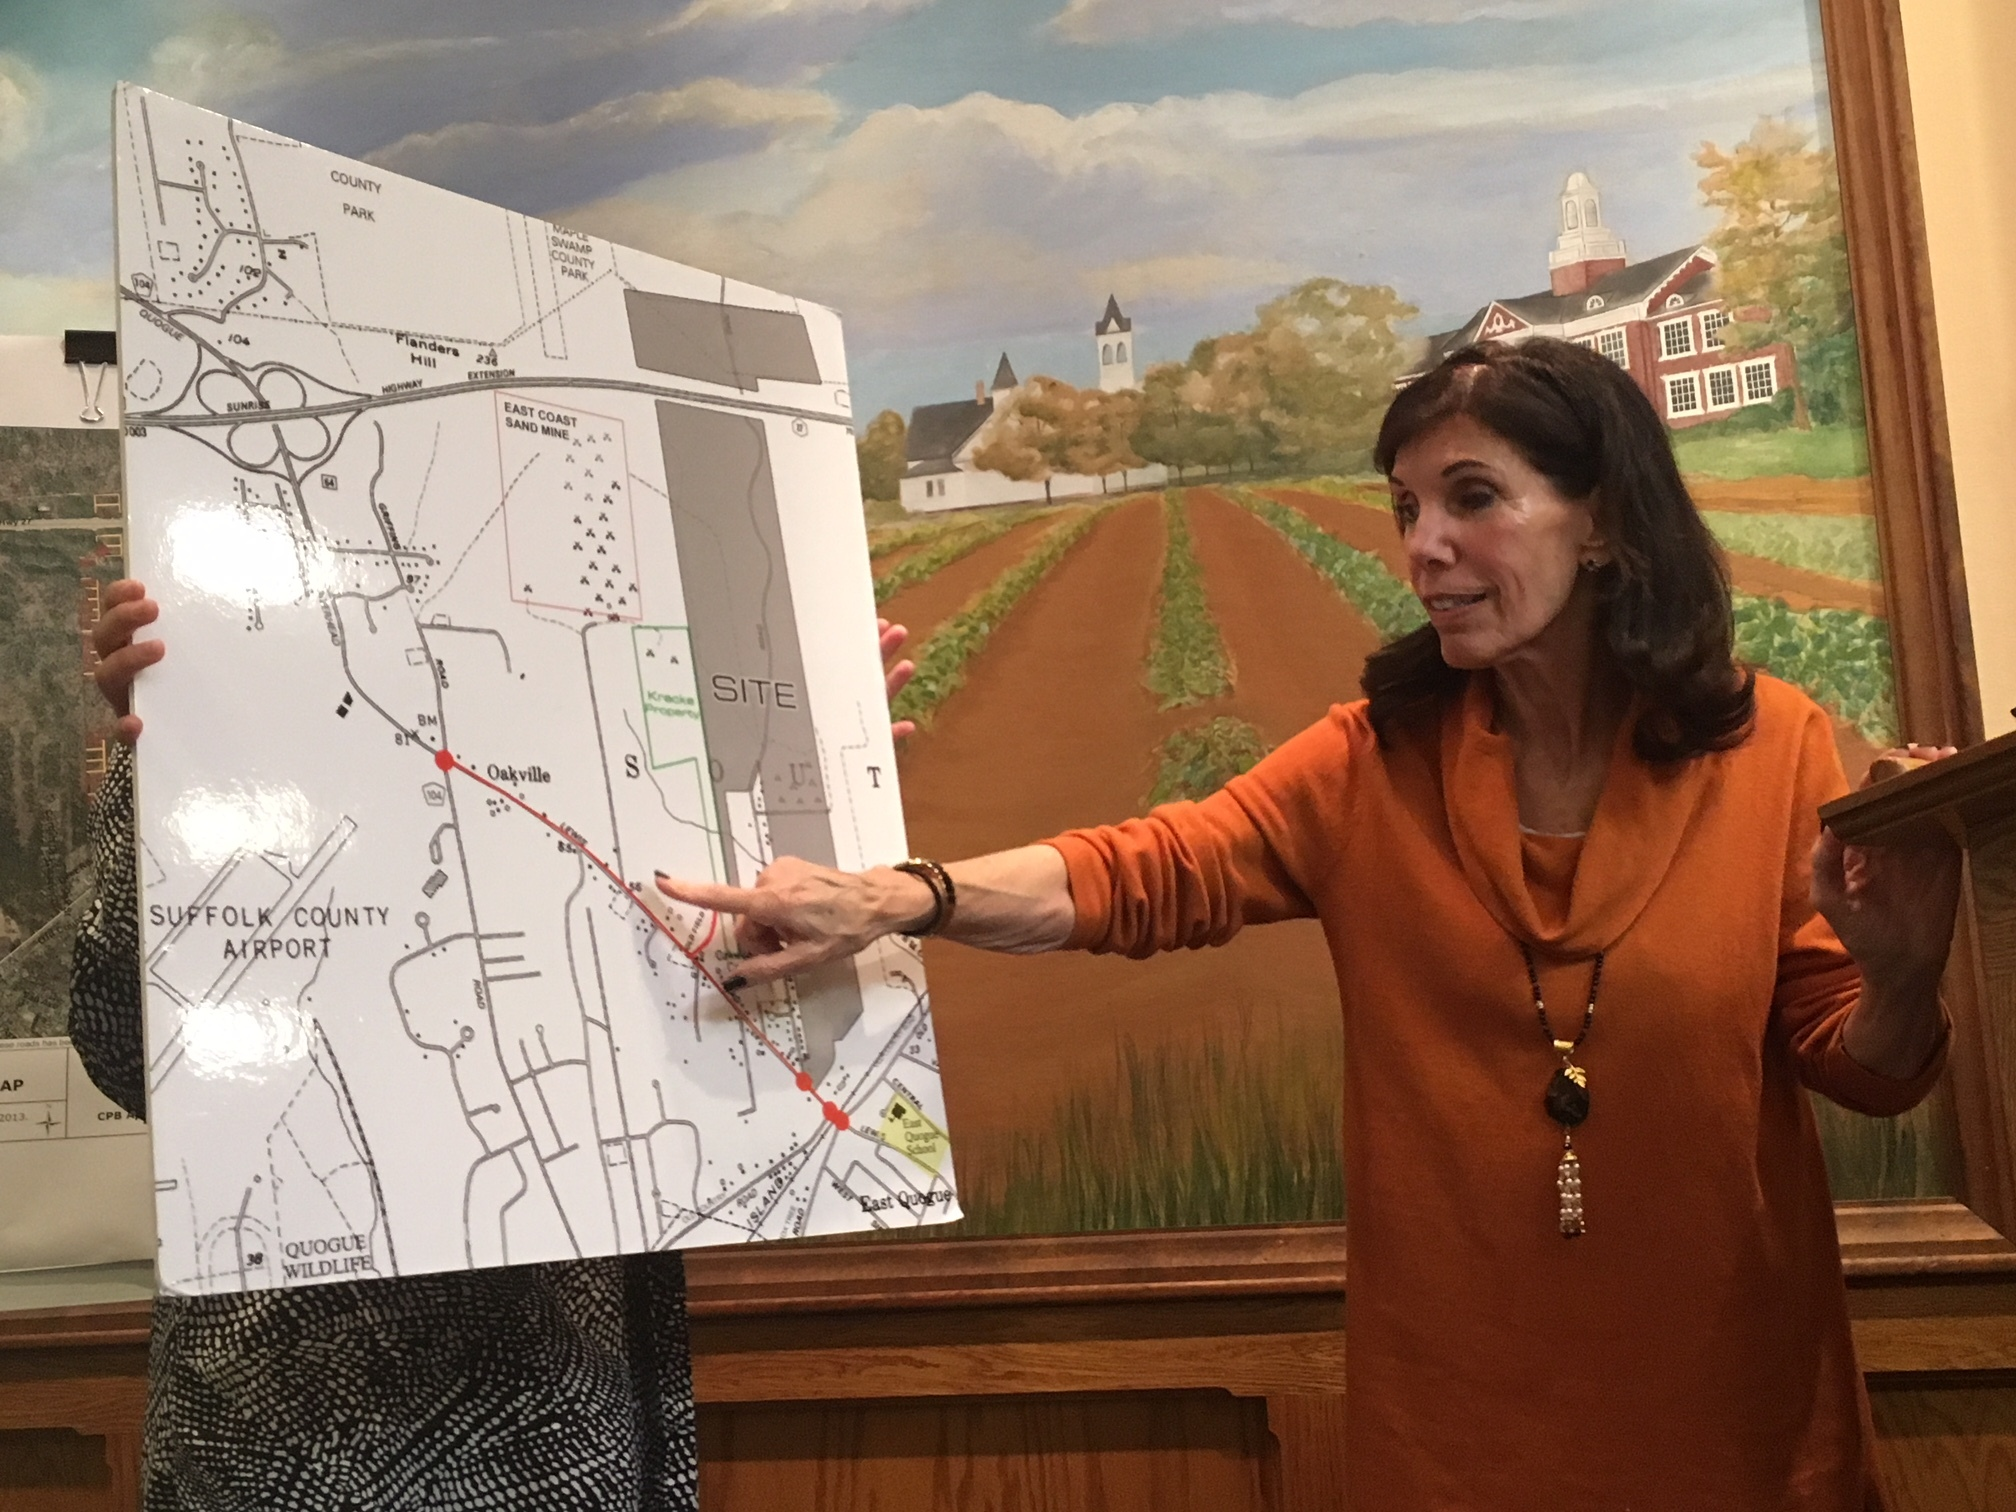 Andrea Spilka focused on the traffic the project might bring to Lewis Road and East Quogue. KITTY MERRILL